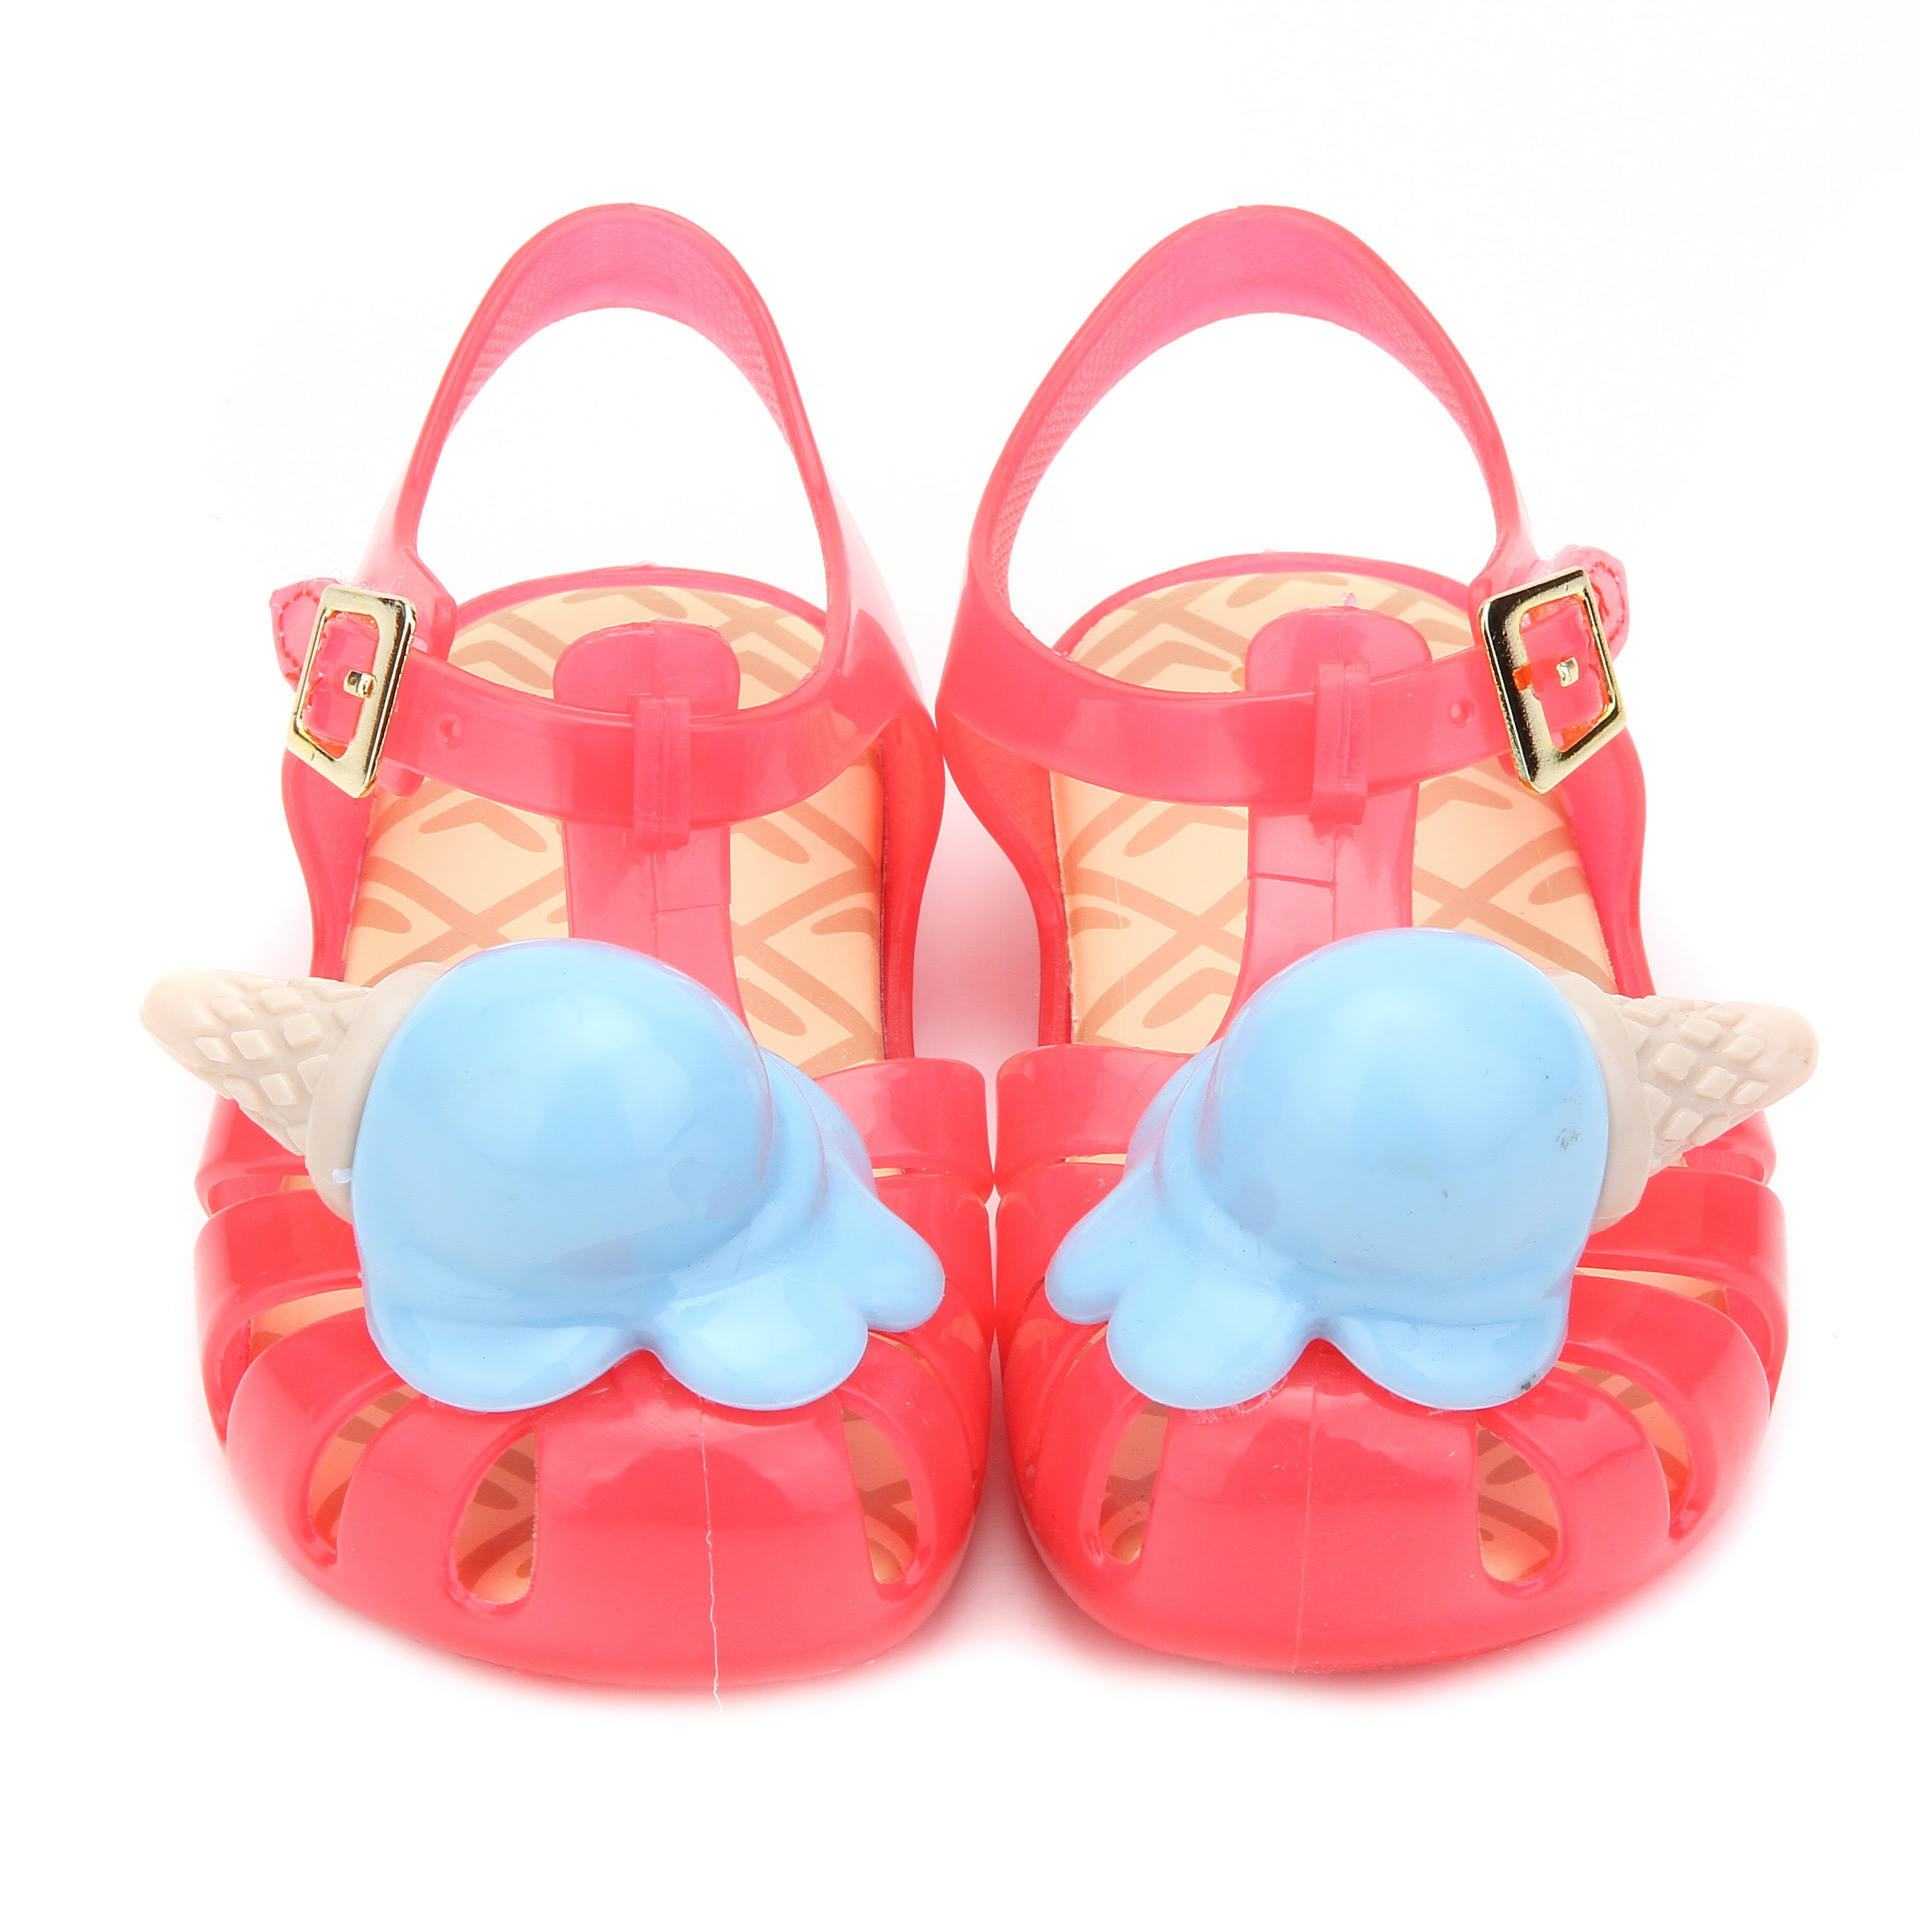 Girl's Jelly Shoes Summer Fashion Kids Roma Sandals Ice Cream Princess PVC Shoes Beach Wear Min Melissa Summer Sandals SH108